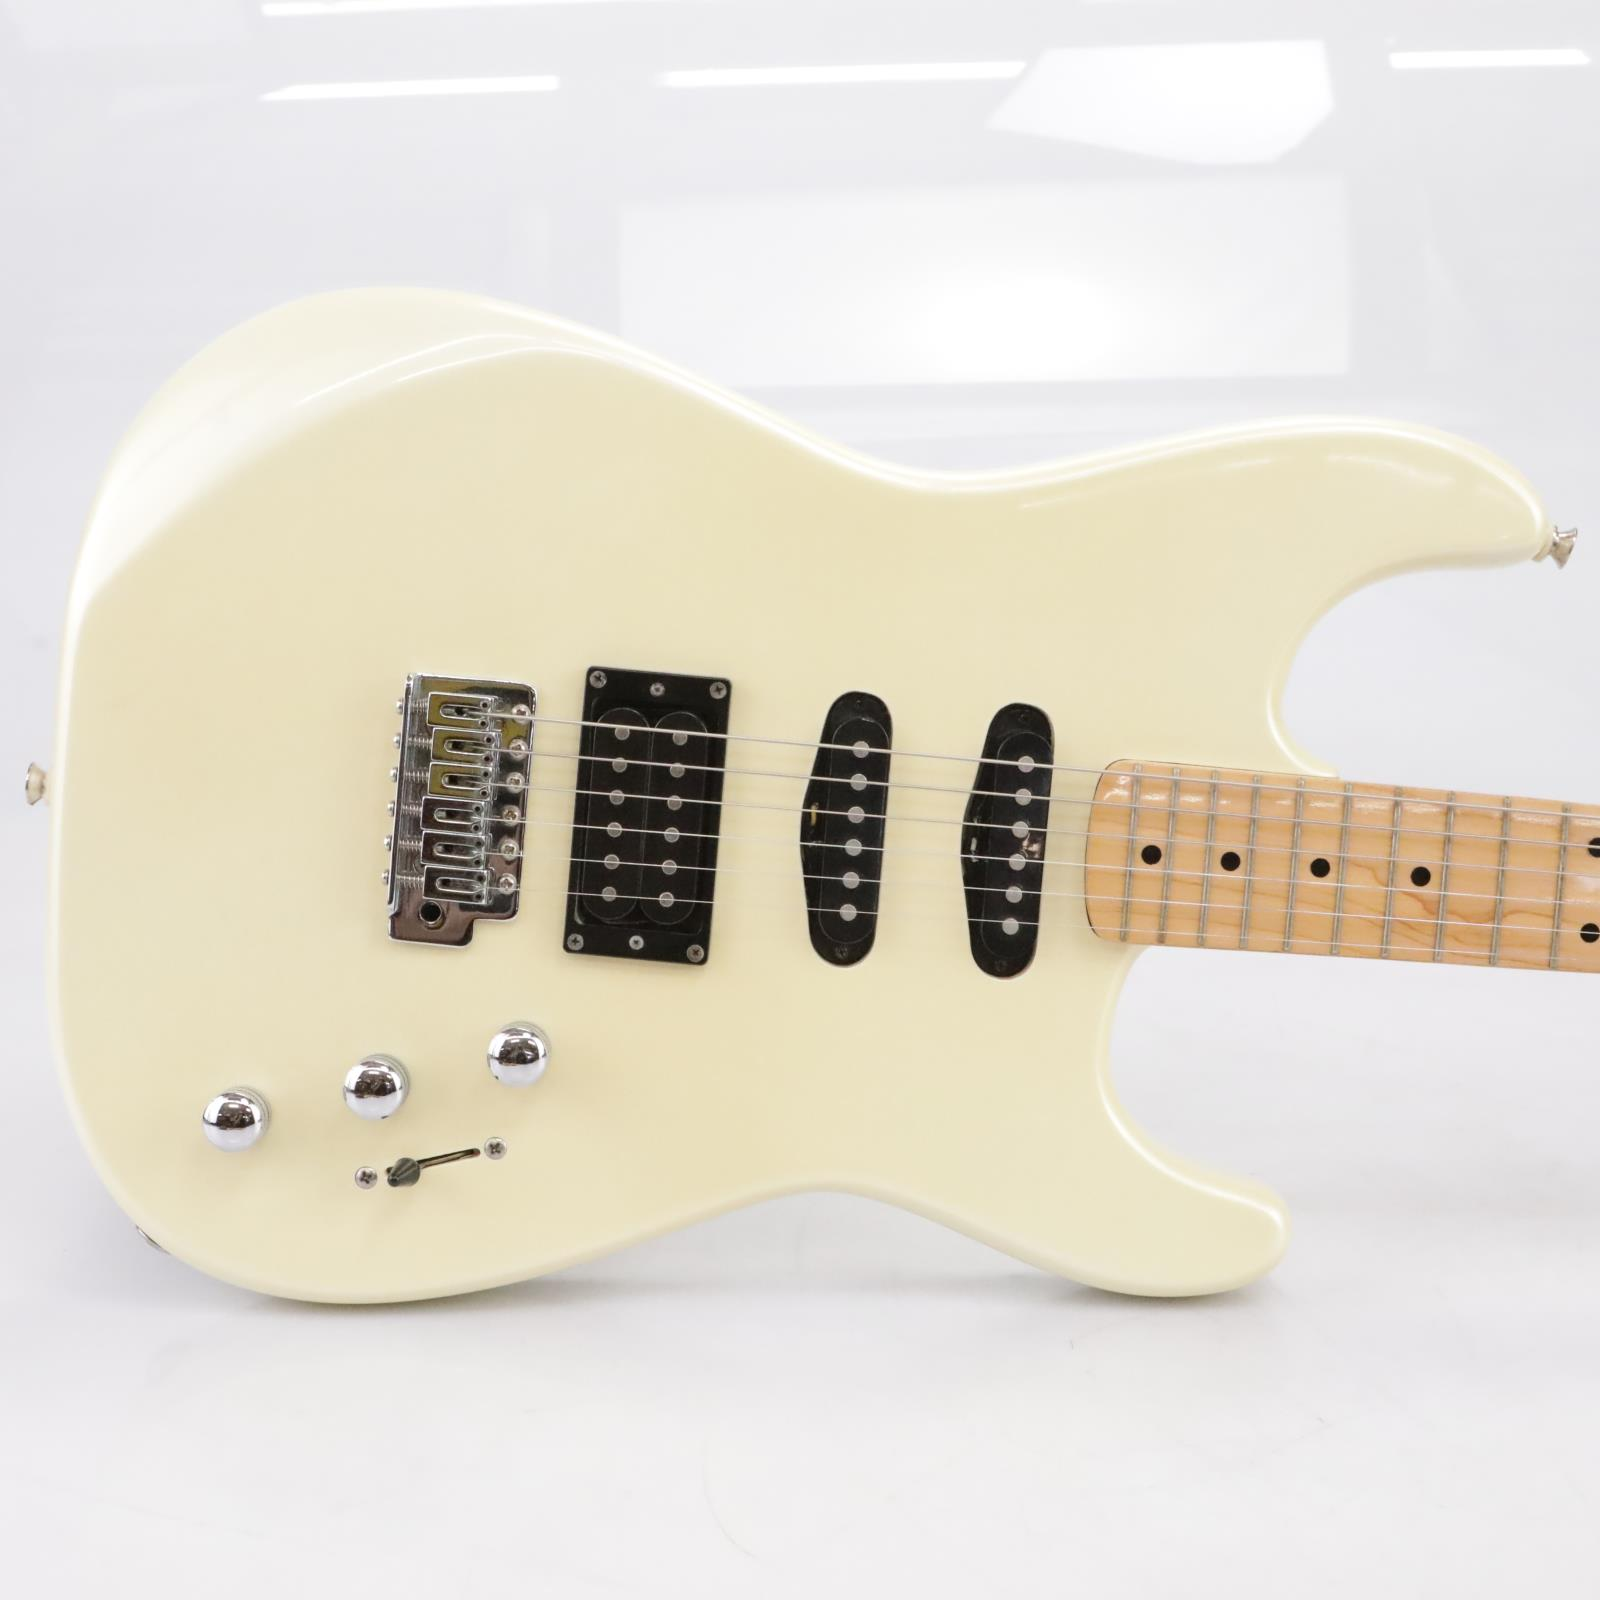 Fender Squier II HSS Stratocaster Vintage Pearl White Electric Guitar #43469